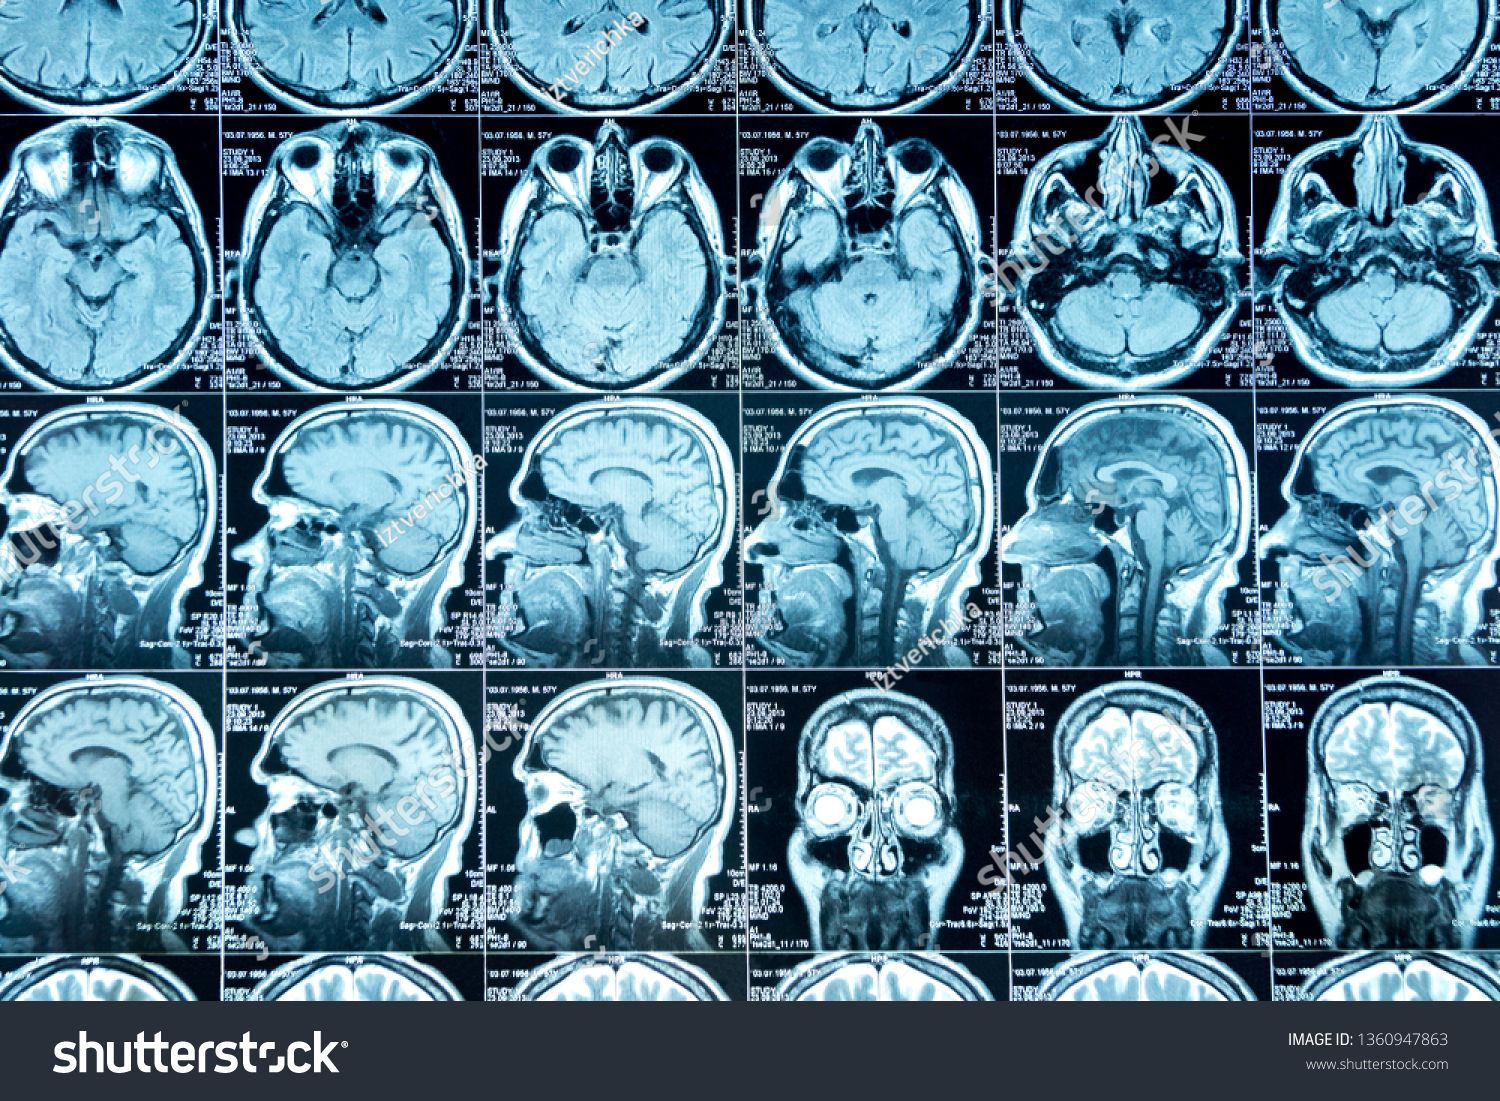 Mri Scan Of The Brain Medical Examination Of The Brain Ad